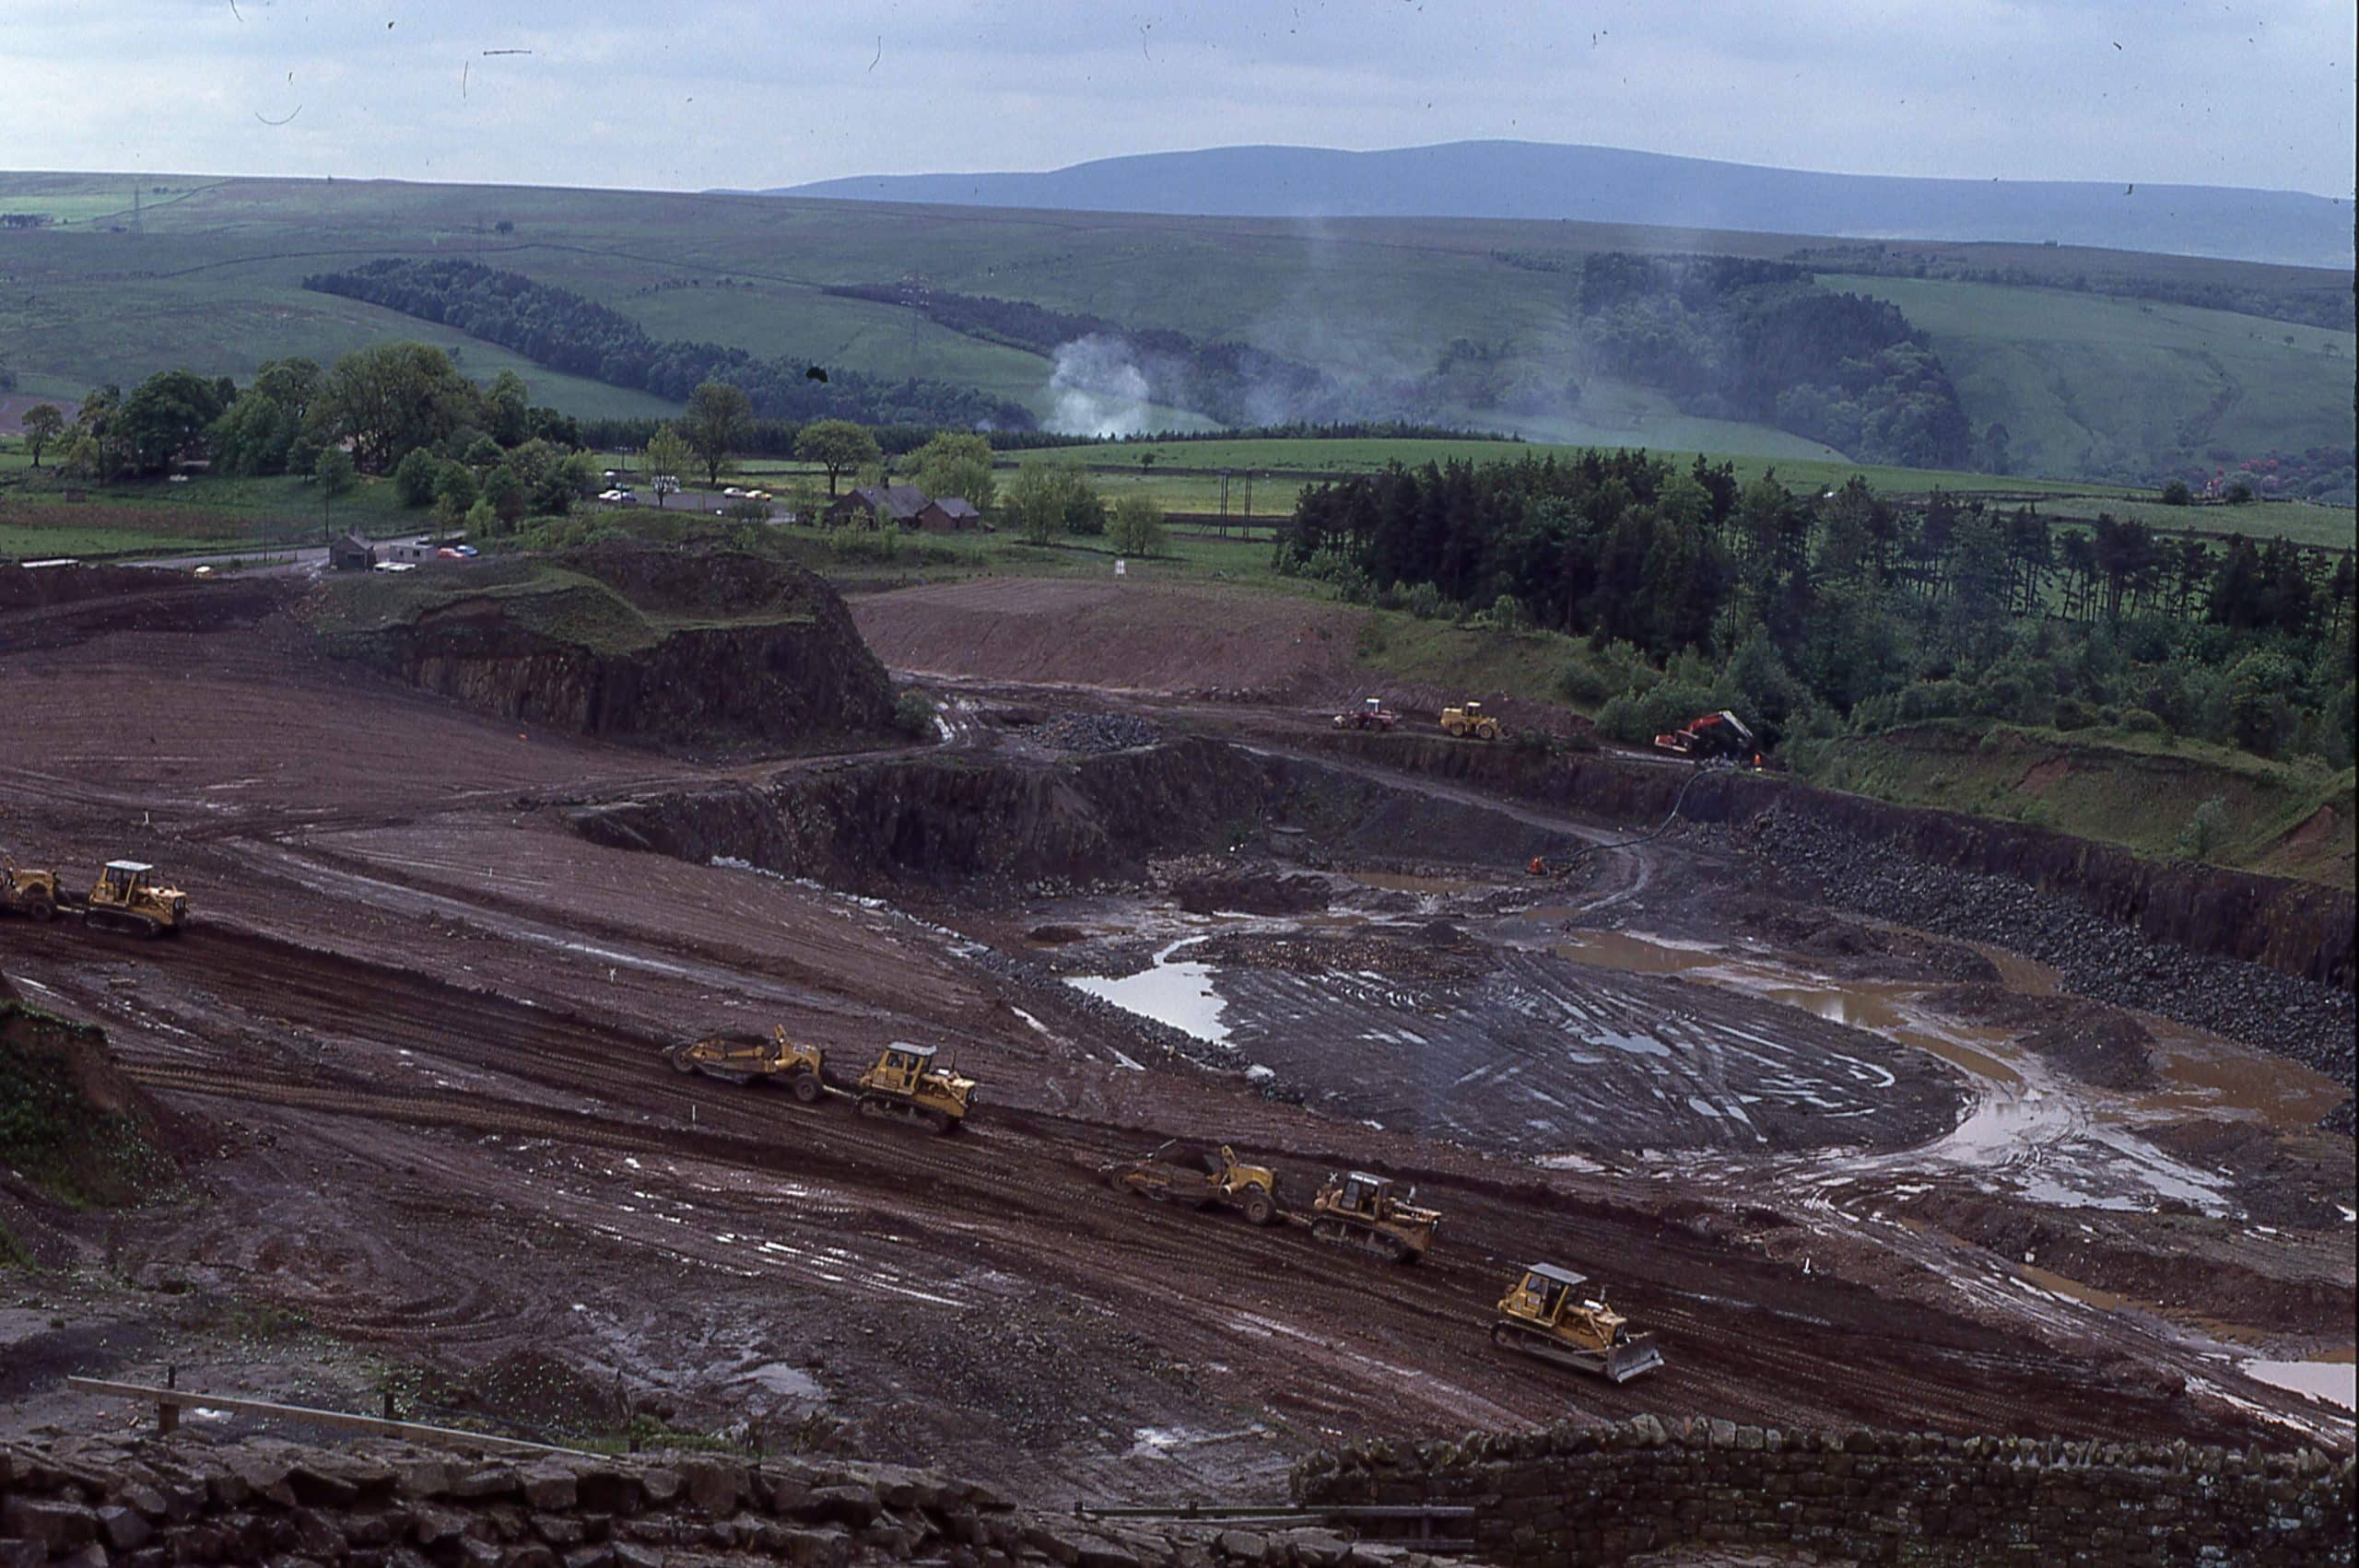 A view of Walltown Quarry from the 1980s